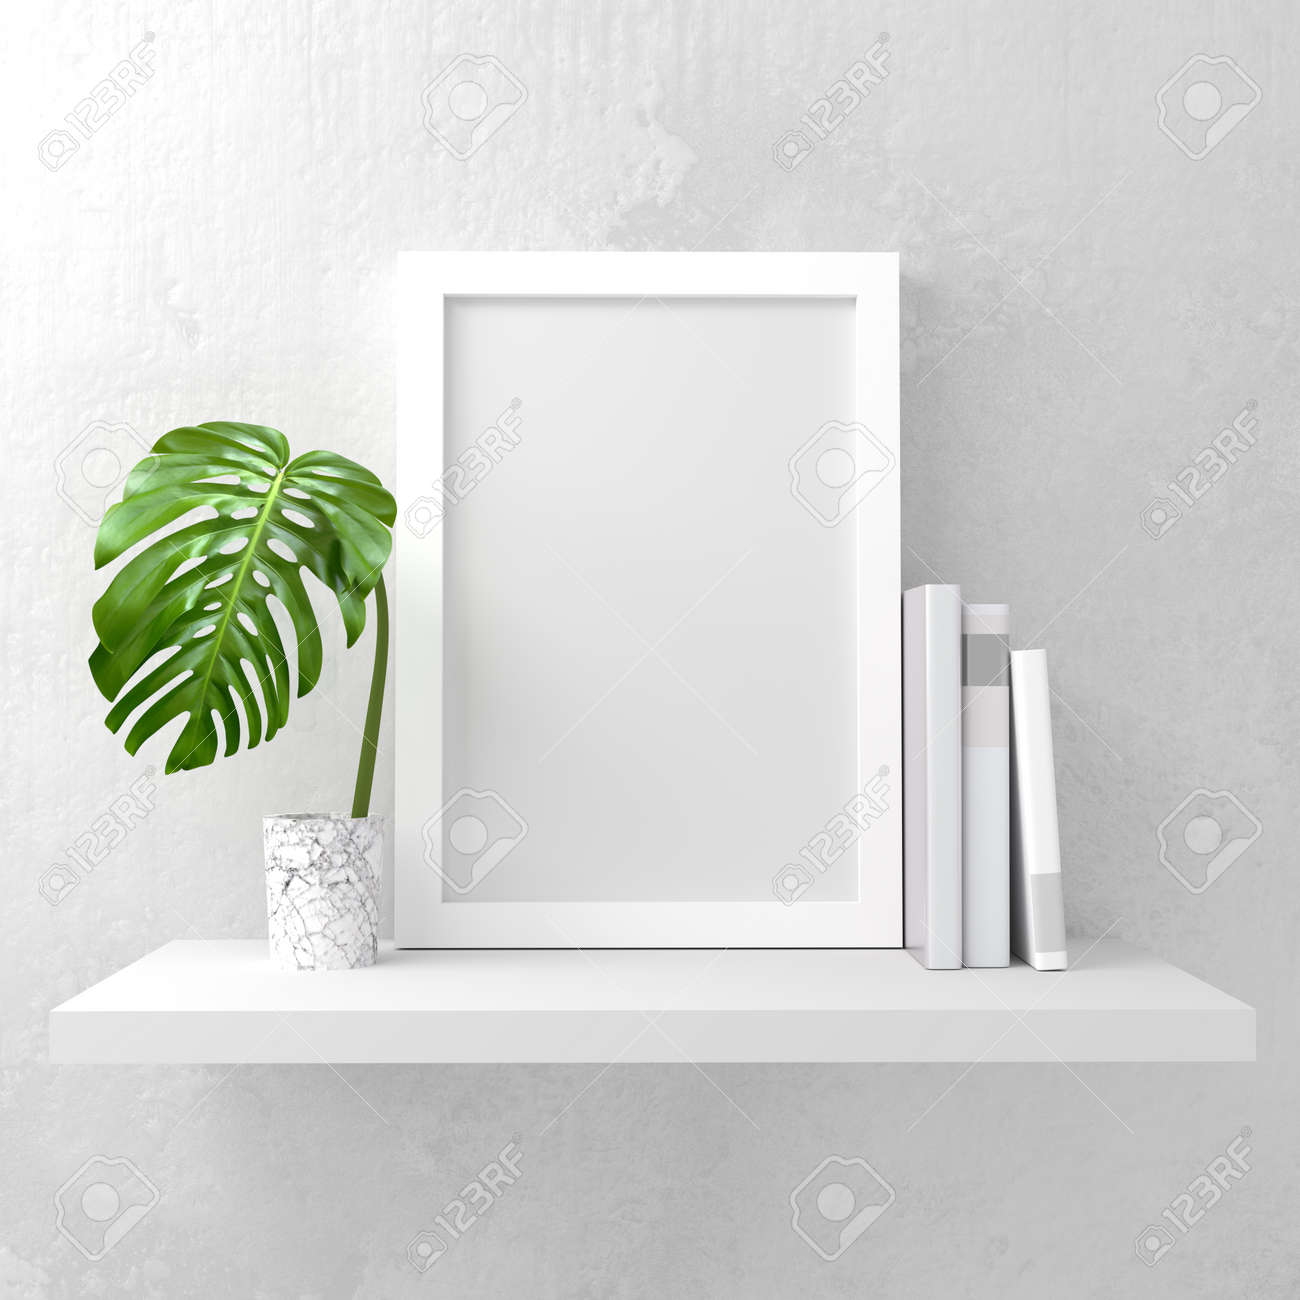 A Photo Frame Mock Up On A White Shelf. Clean And Minimal Design ...